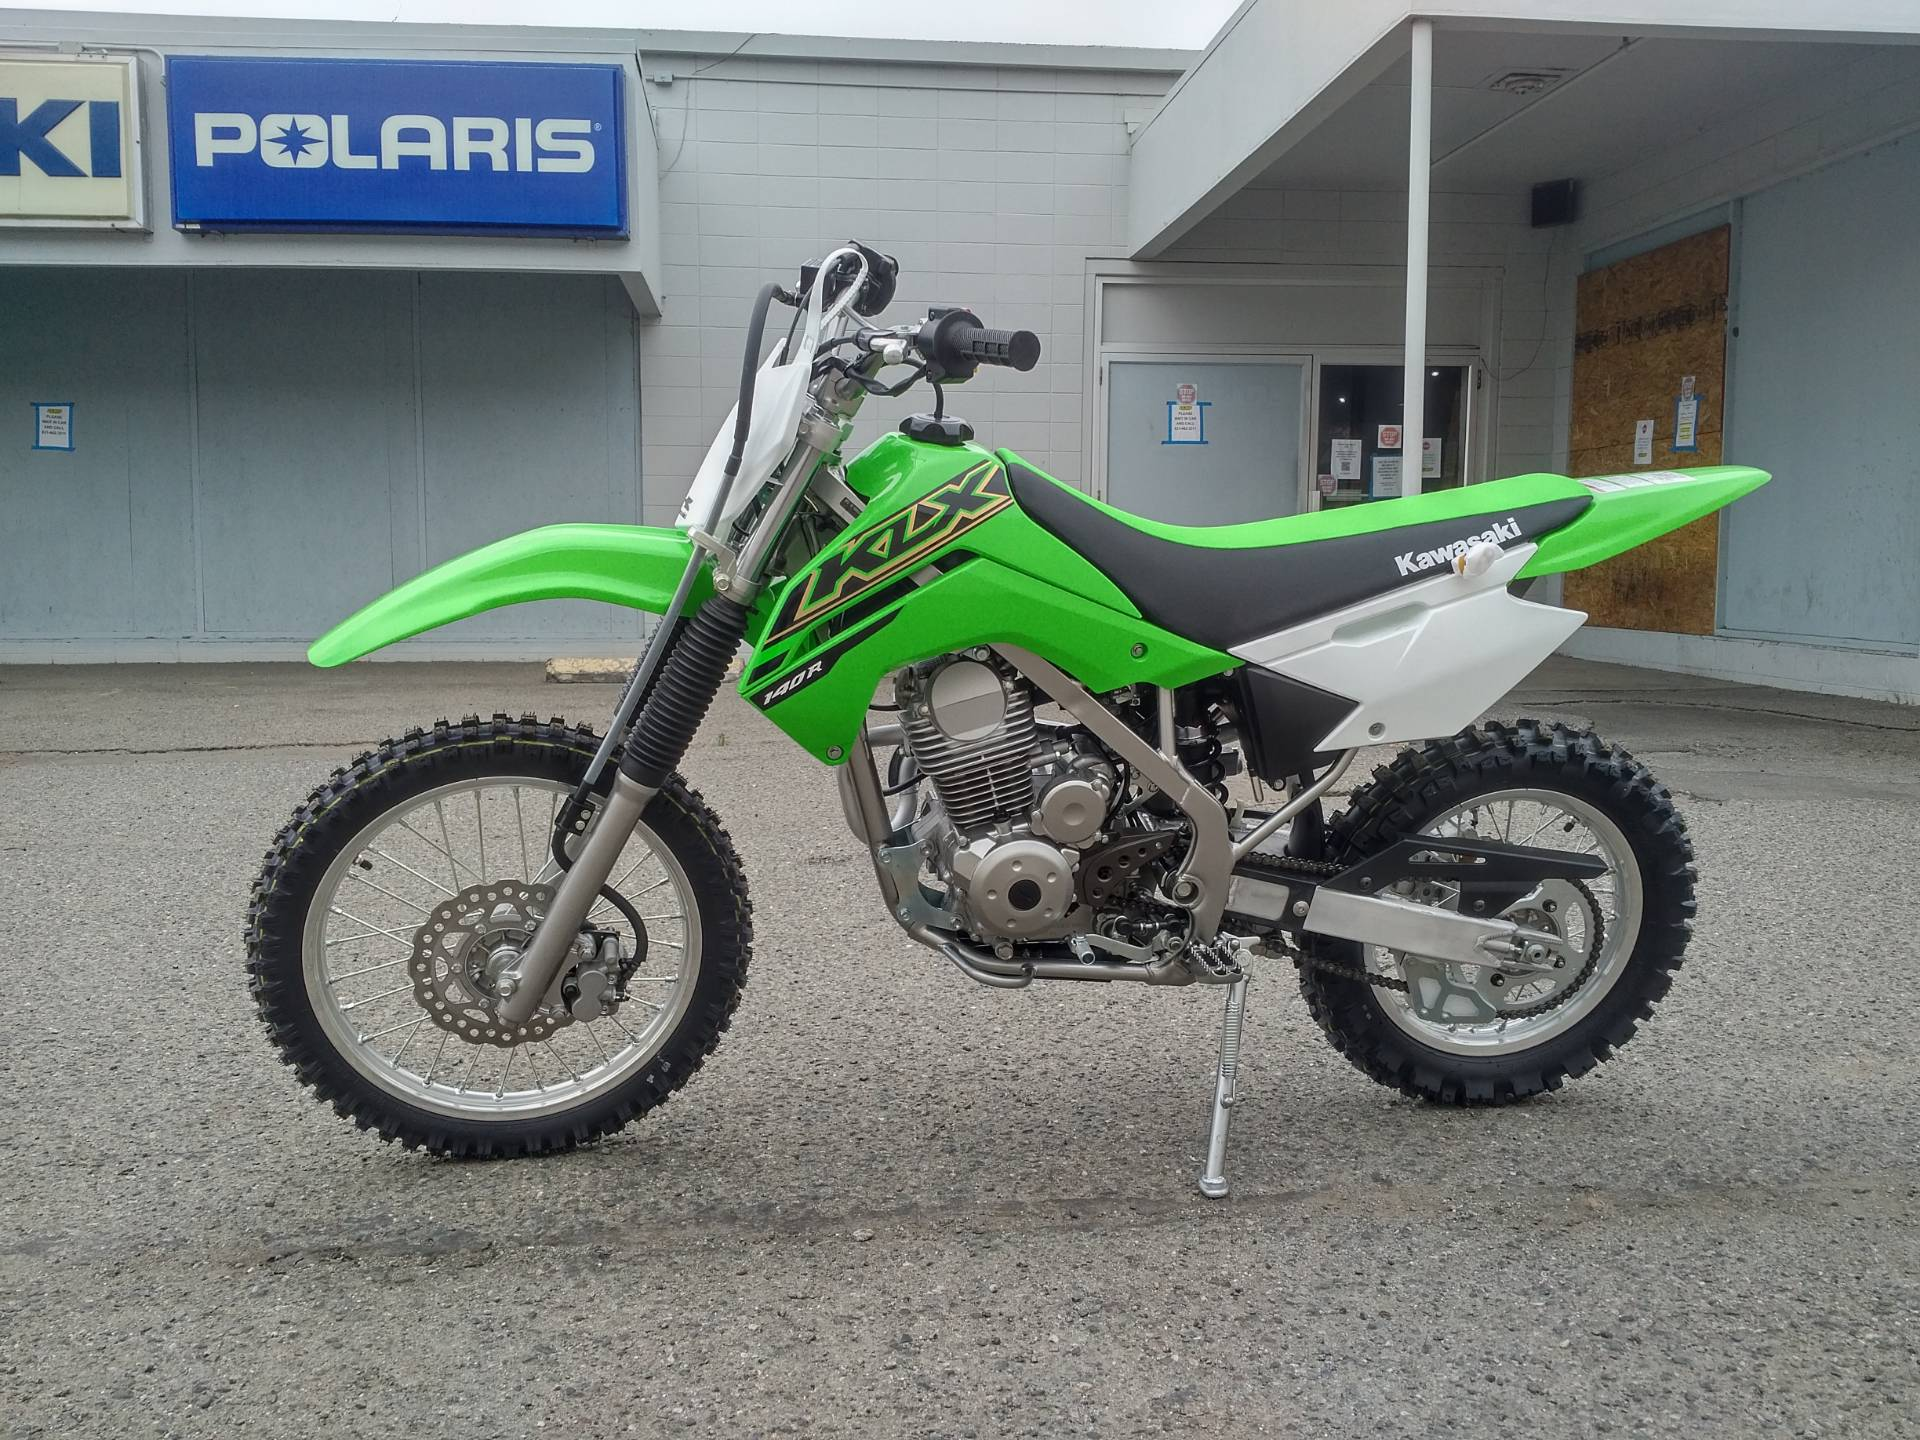 2021 Kawasaki KLX 140R in Salinas, California - Photo 3